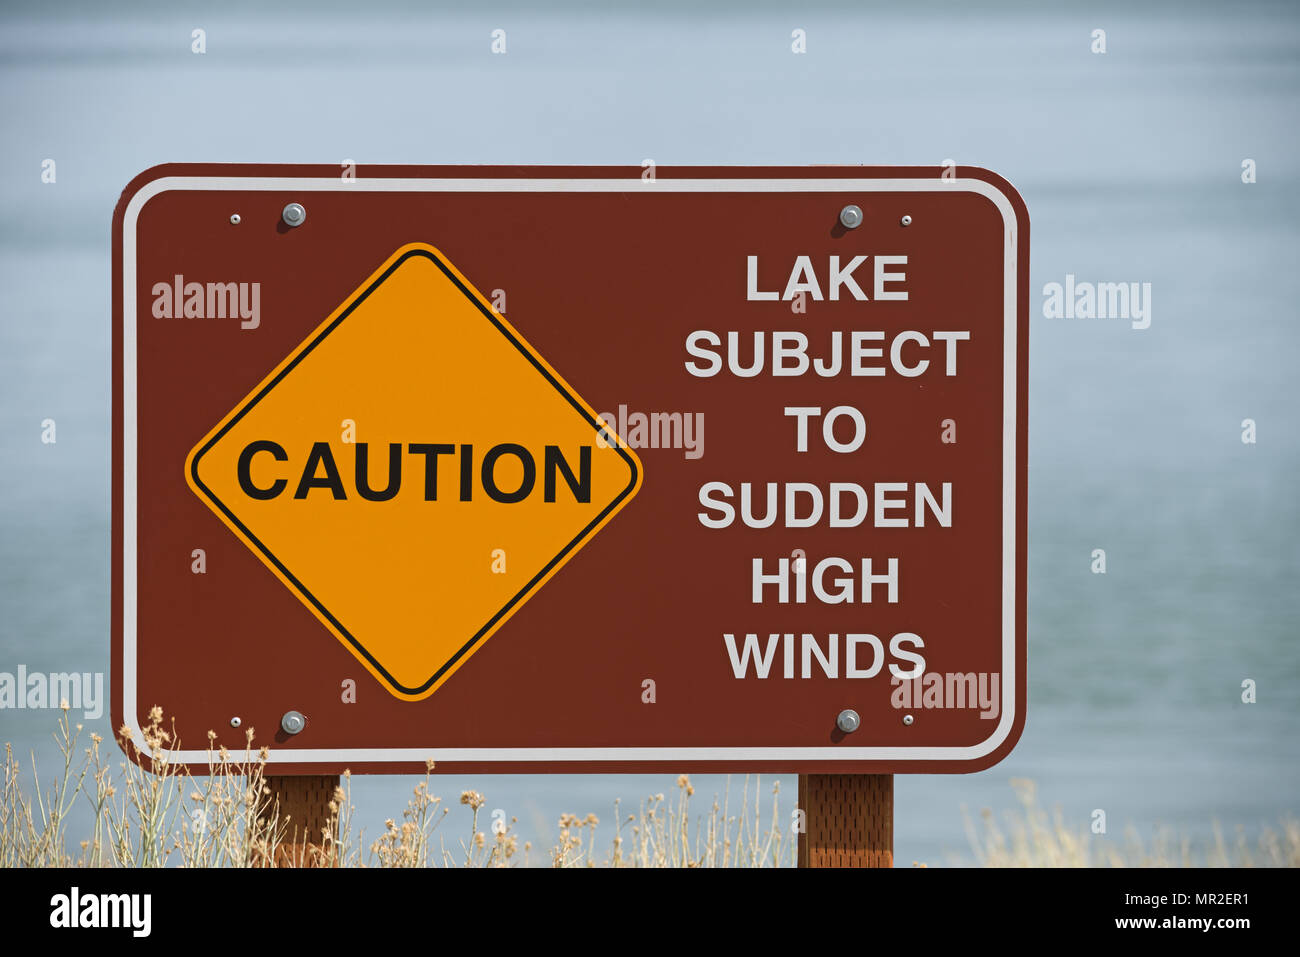 caution lake subject to high winds sign on the shore of Mono Lake - Stock Image